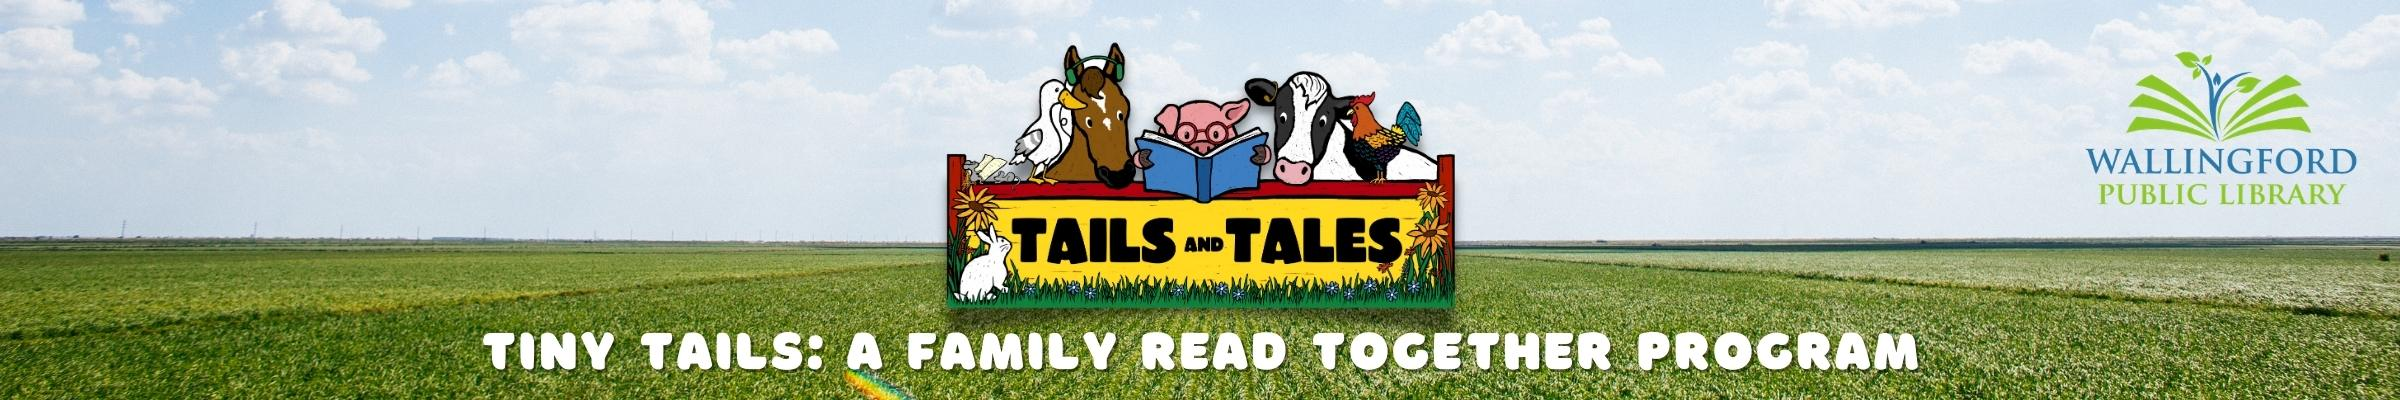 Tiny tails banner 9ad643d1